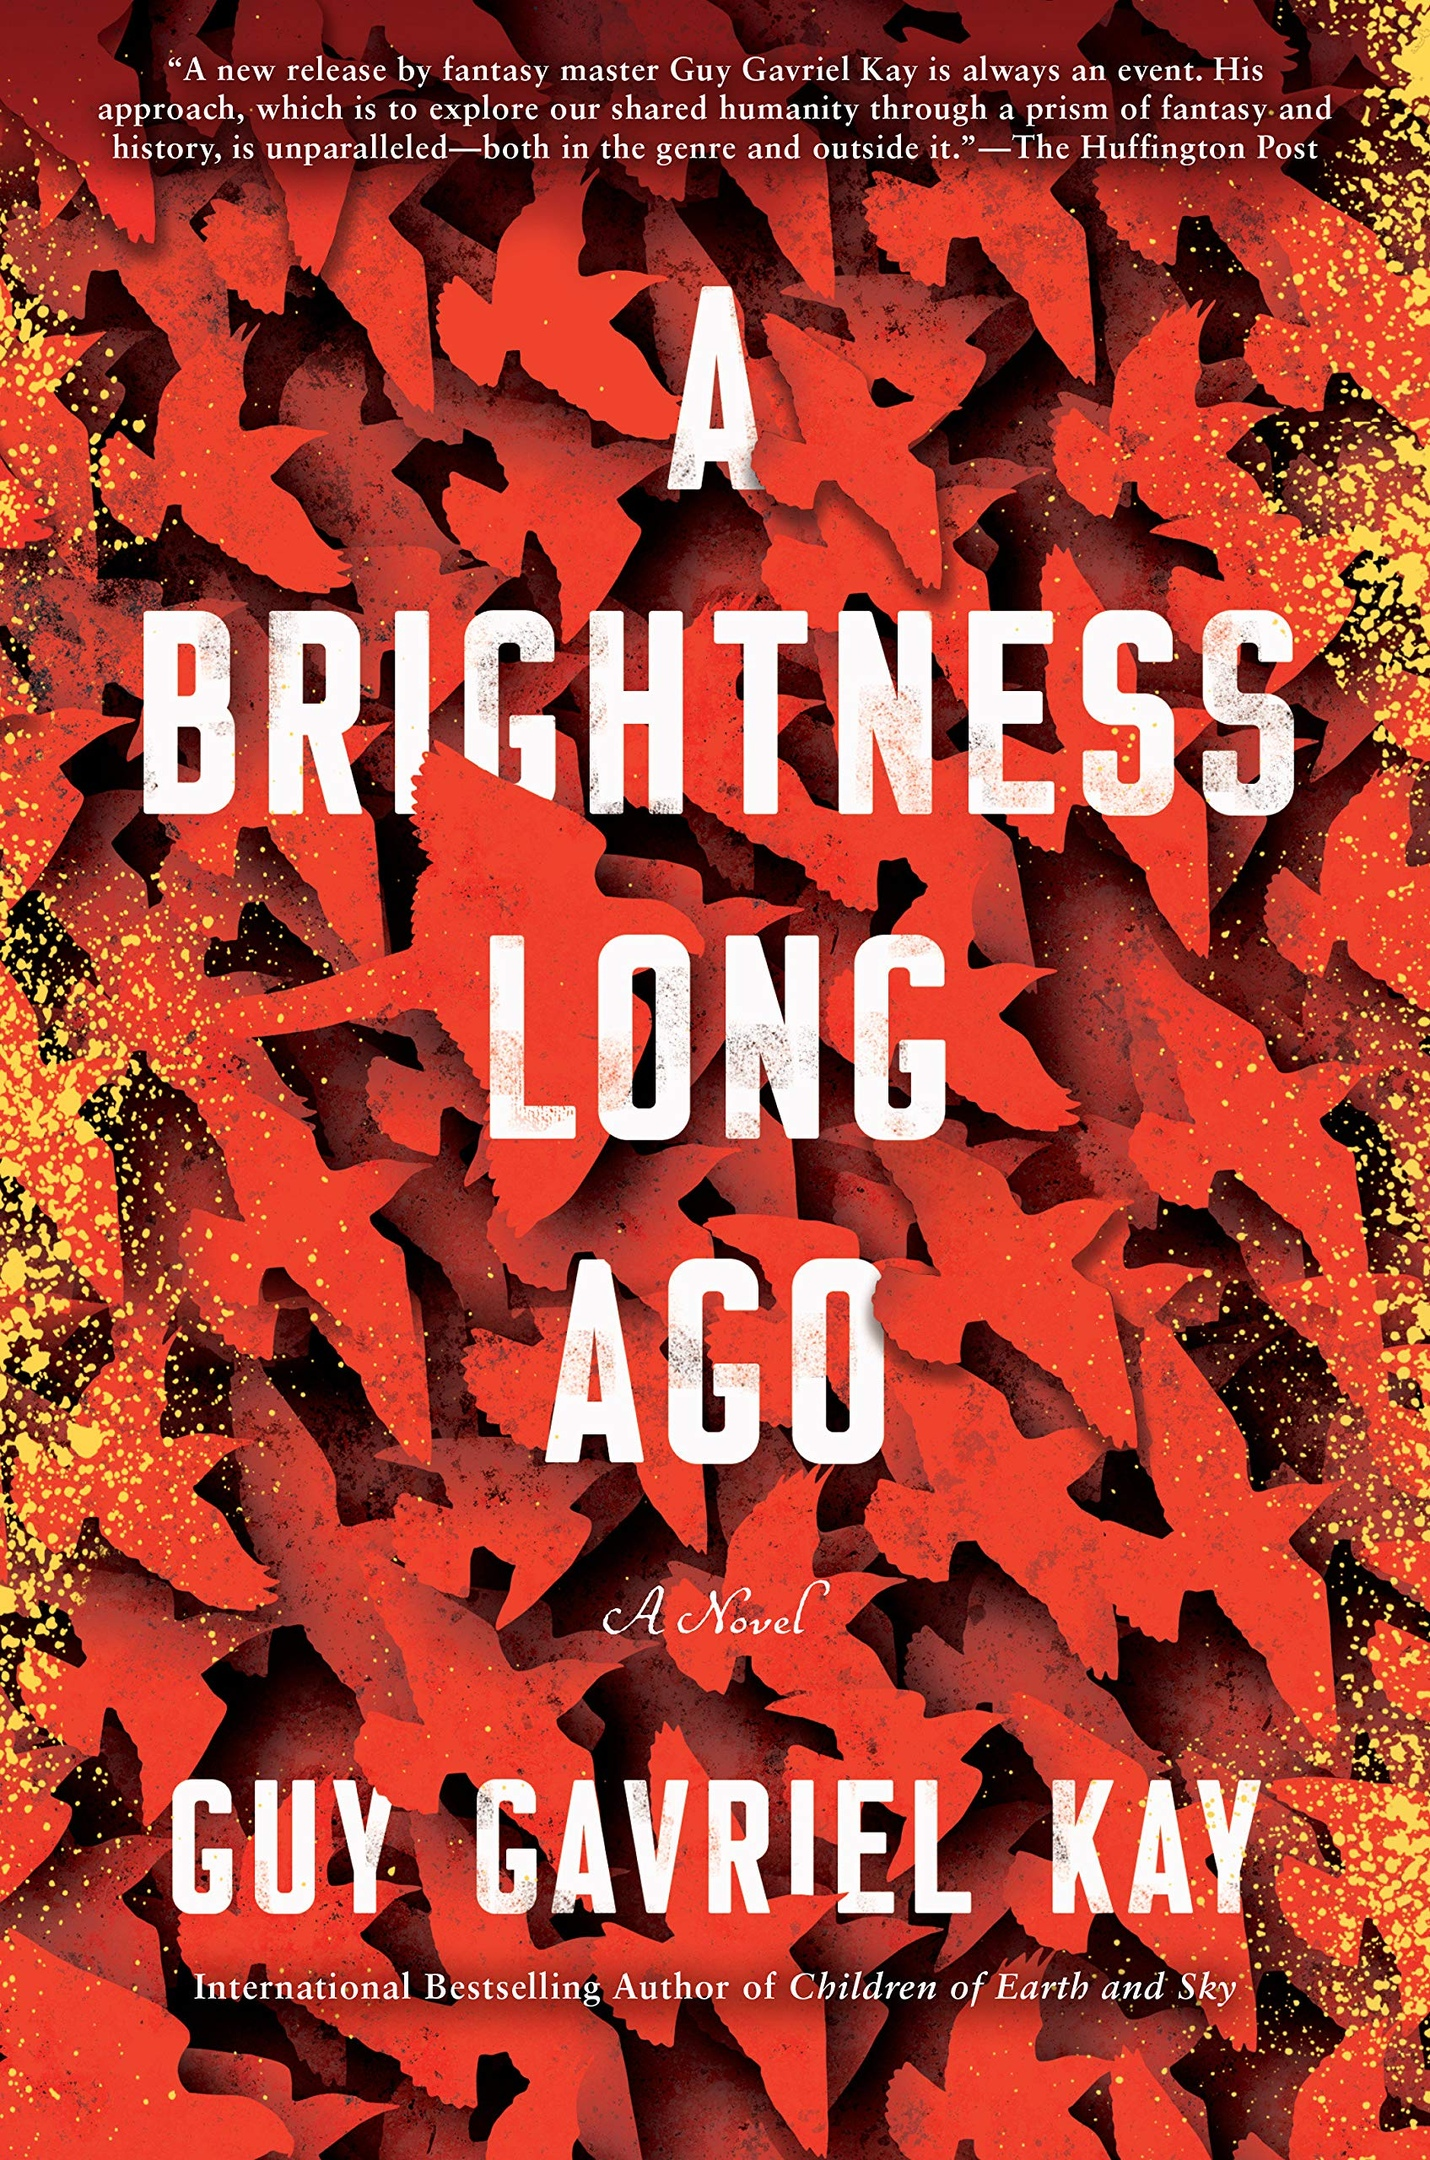 Guy Gavriel Kay – A Brightness Long